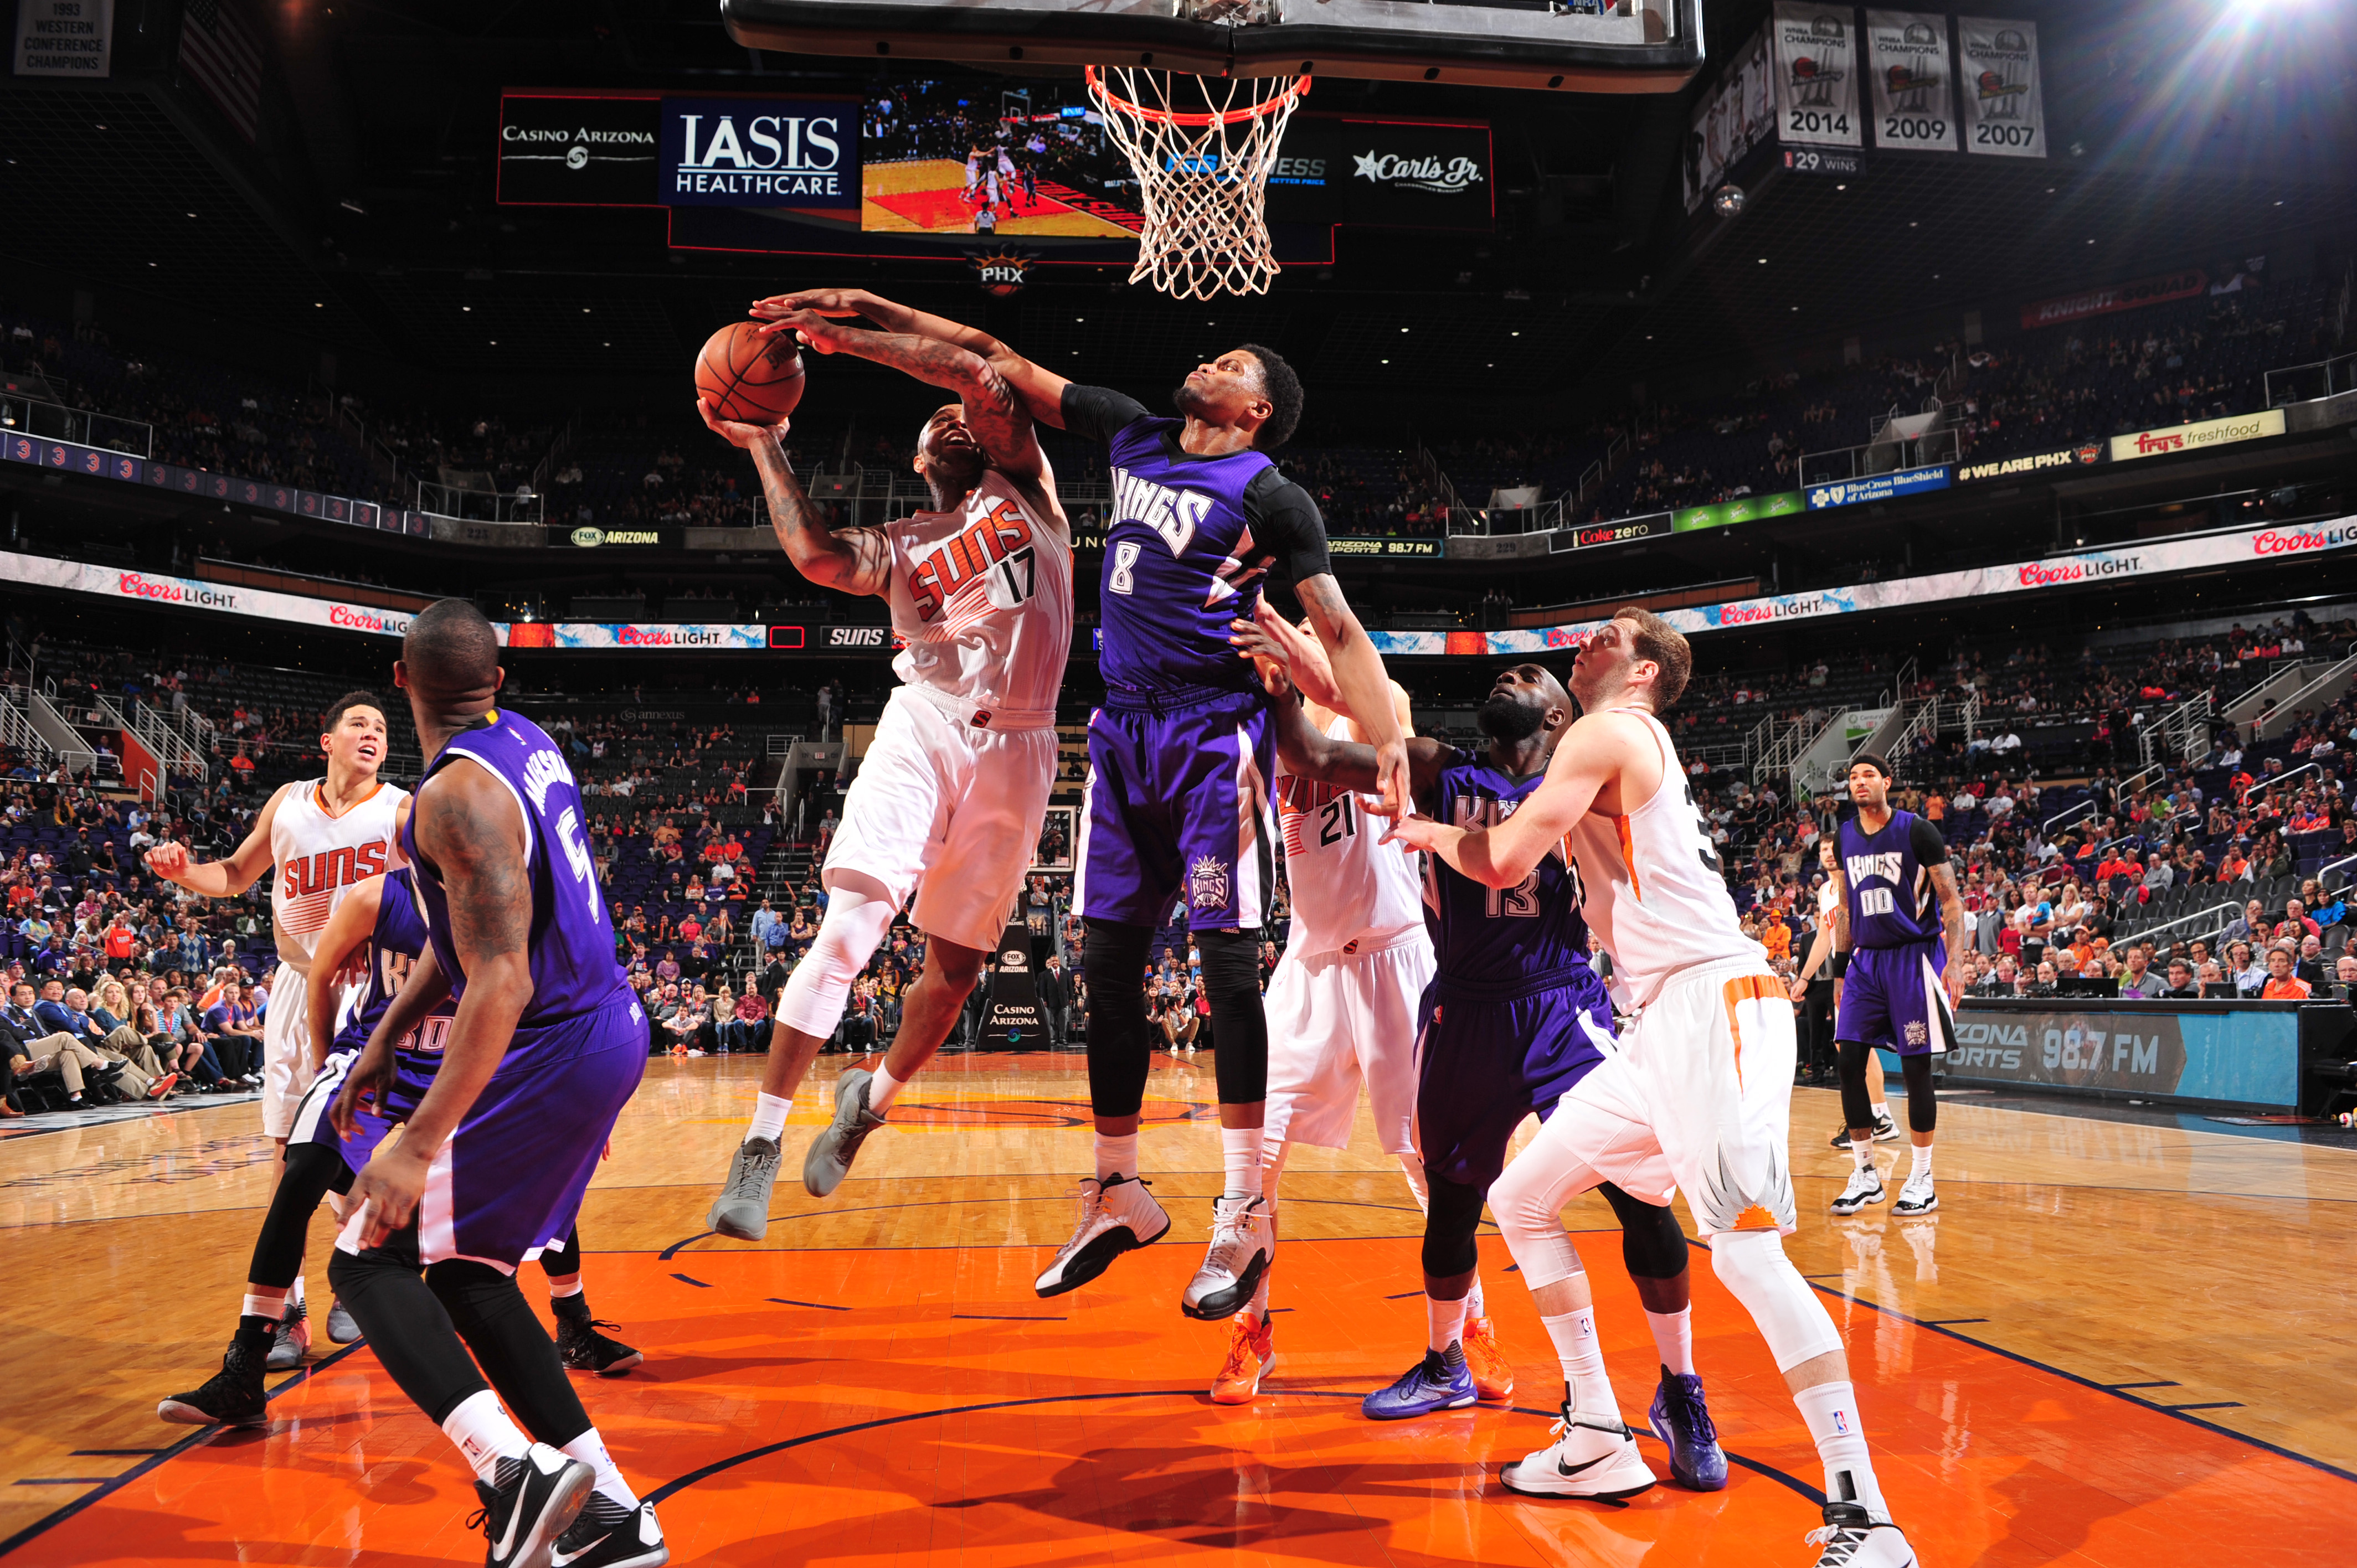 PHOENIX, AZ - APRIL 11:  P.J. Tucker #17 of the Phoenix Suns goes to the basket against Rudy Gay #8 of the Sacramento Kings on April 11, 2016 at Talking Stick Resort Arena in Phoenix, Arizona. (Photo by Barry Gossage/NBAE via Getty Images)